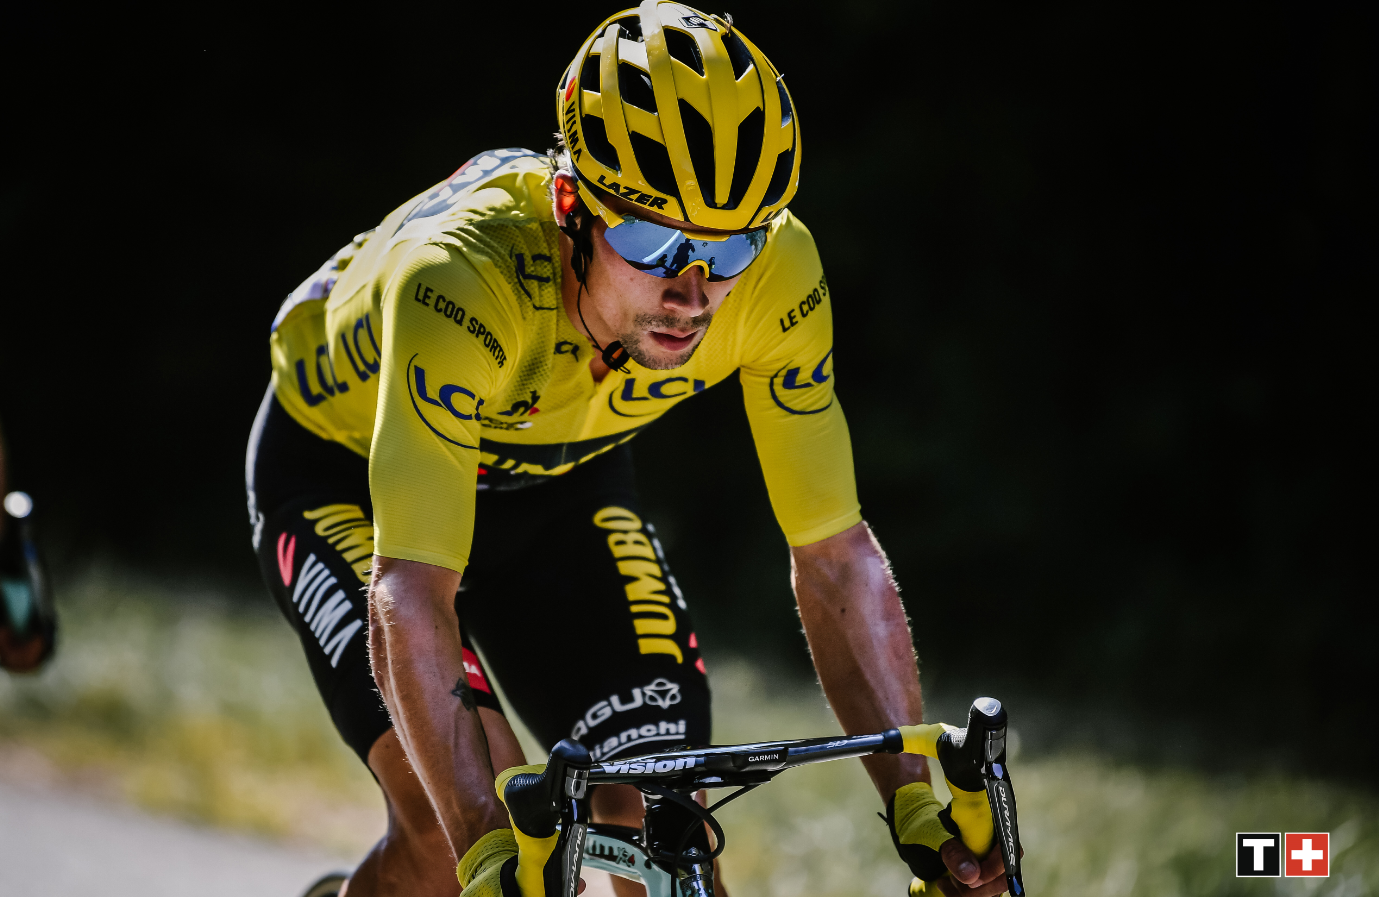 An image of Primoz Roglič wearing the Tour De France Yellow Jersey